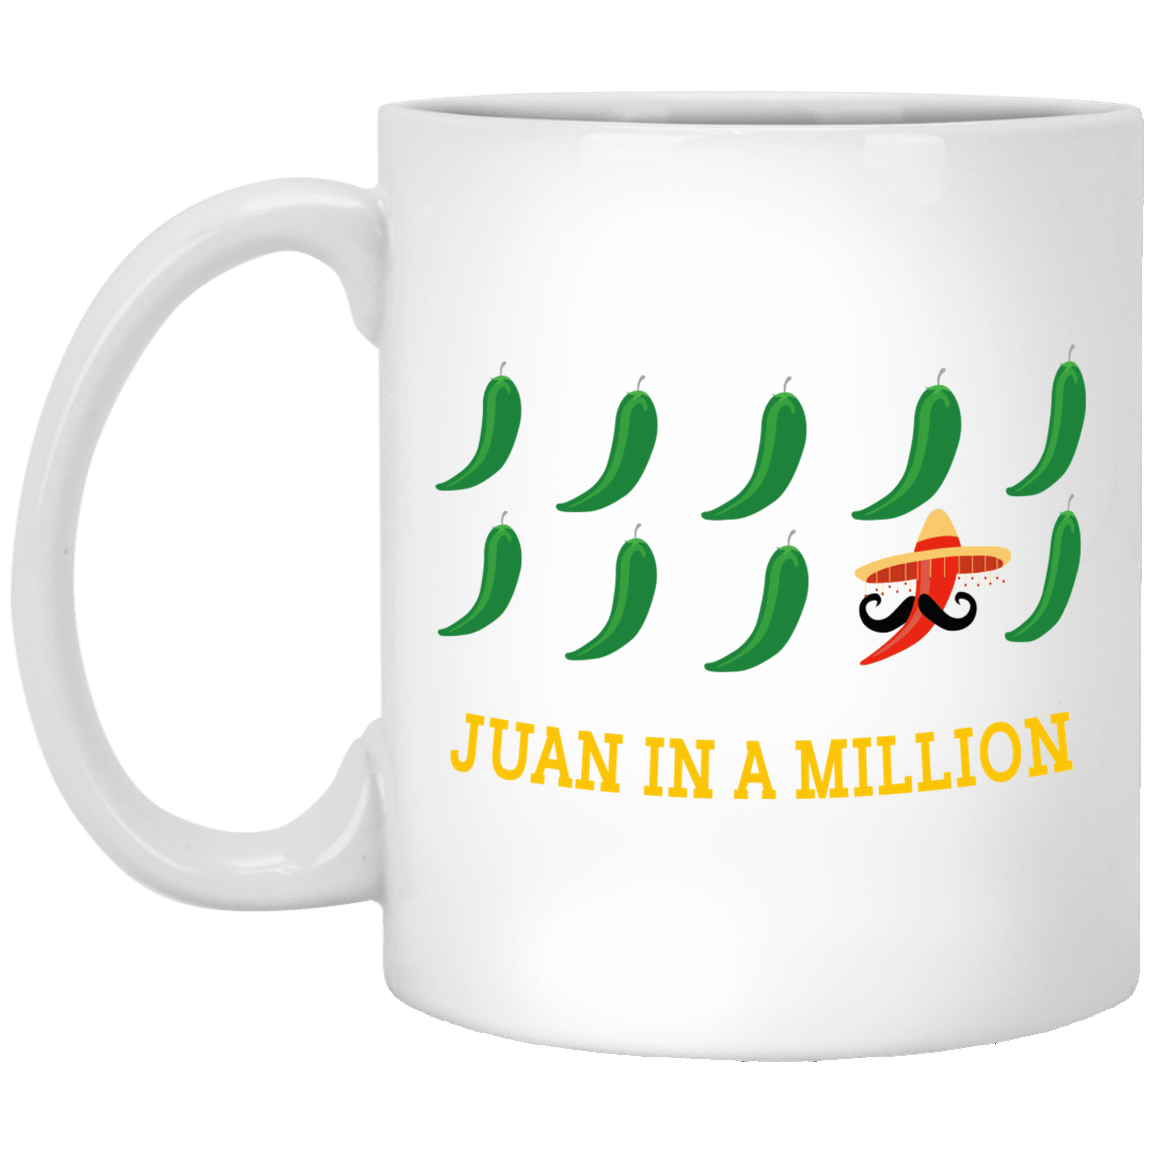 Juan In A Million Mug 1005-9786-72966292-47417 - Tee Ript